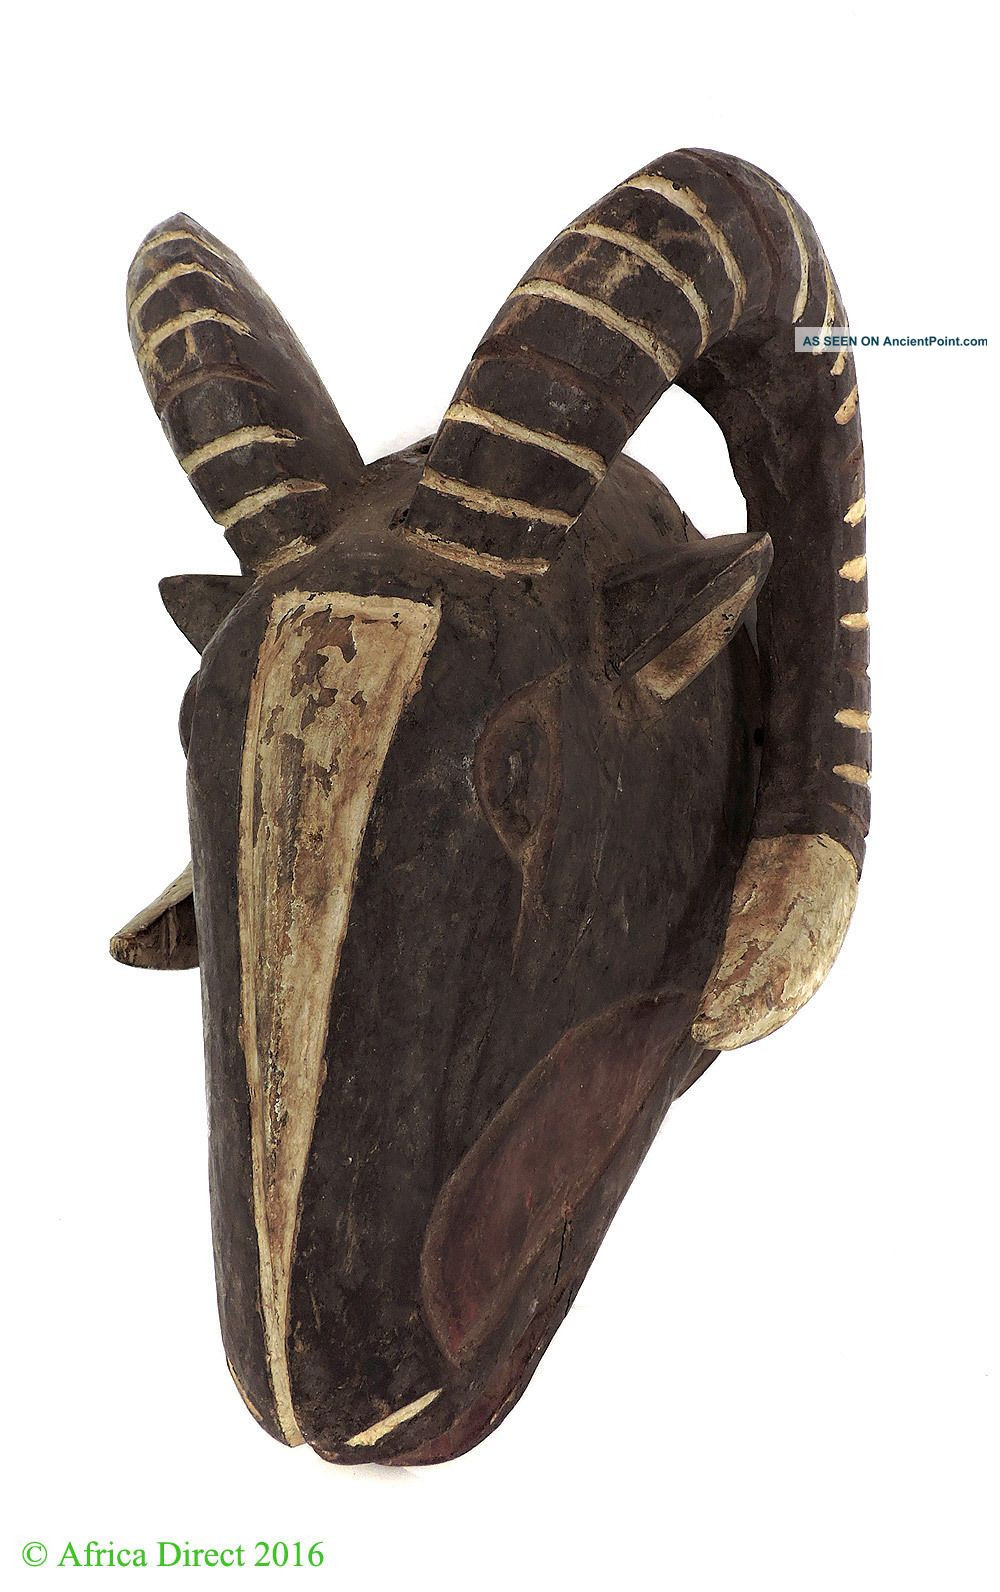 Bobo Mask Ram With Horns Burkina Faso African Art Was $145.  00 Masks photo